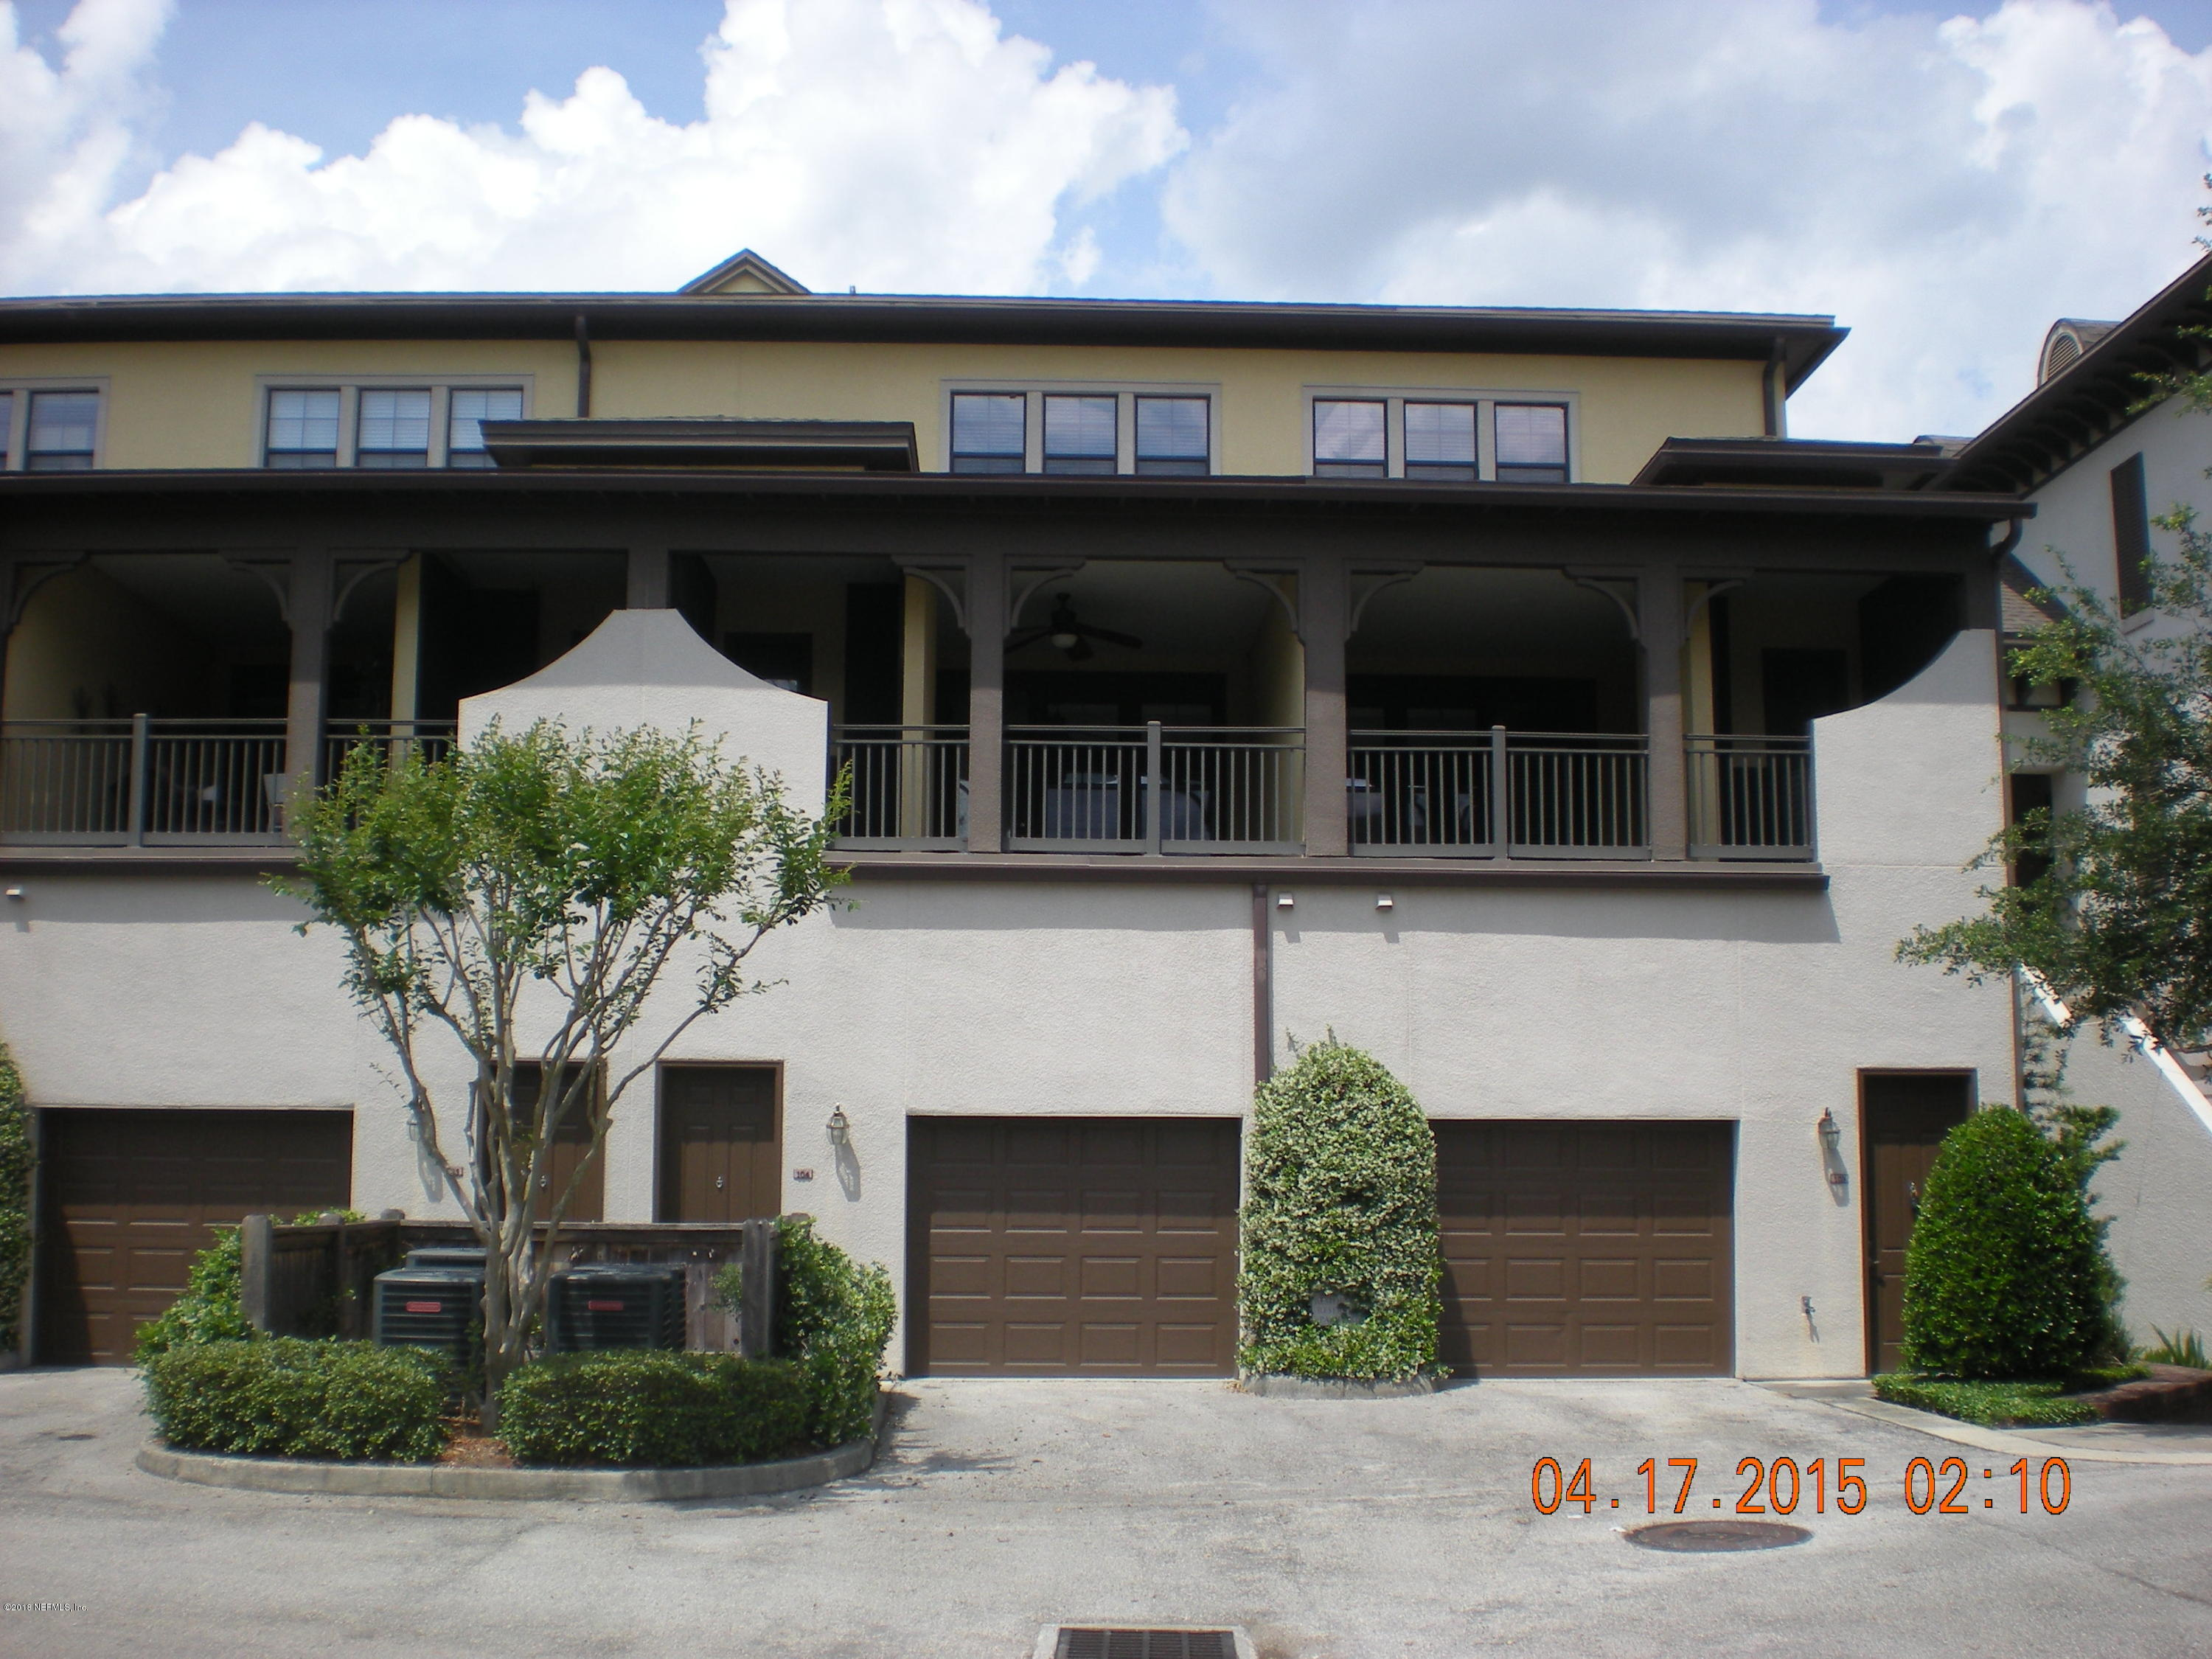 9823 TAPESTRY PARK, JACKSONVILLE, FLORIDA 32246, 3 Bedrooms Bedrooms, ,3 BathroomsBathrooms,Residential - condos/townhomes,For sale,TAPESTRY PARK,961395